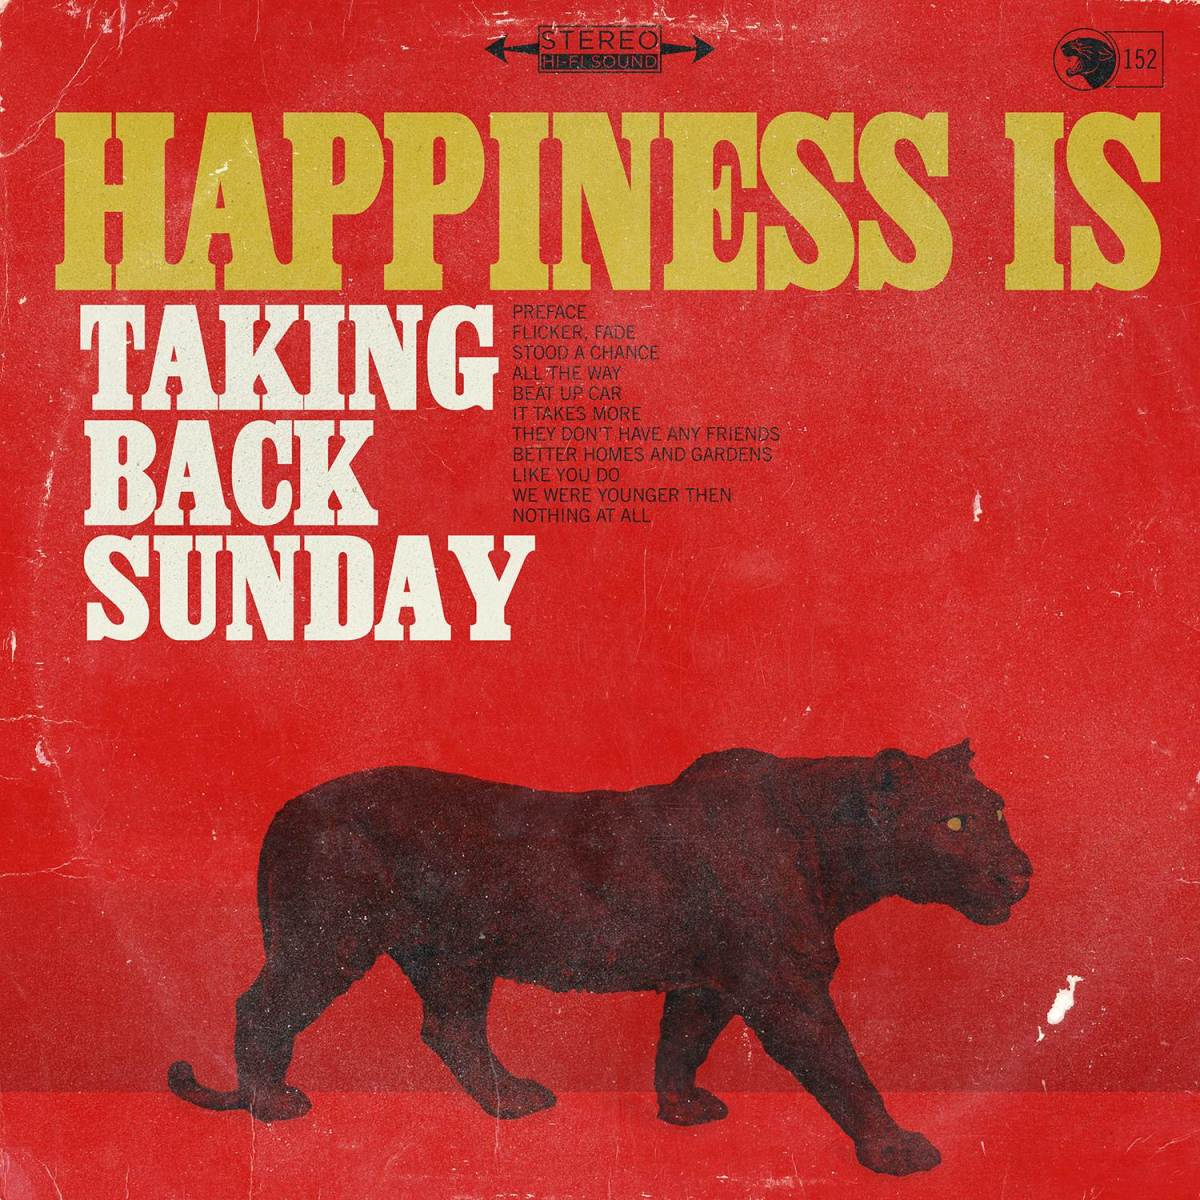 Taking Back Sunday - Happiness Is (Album Review)